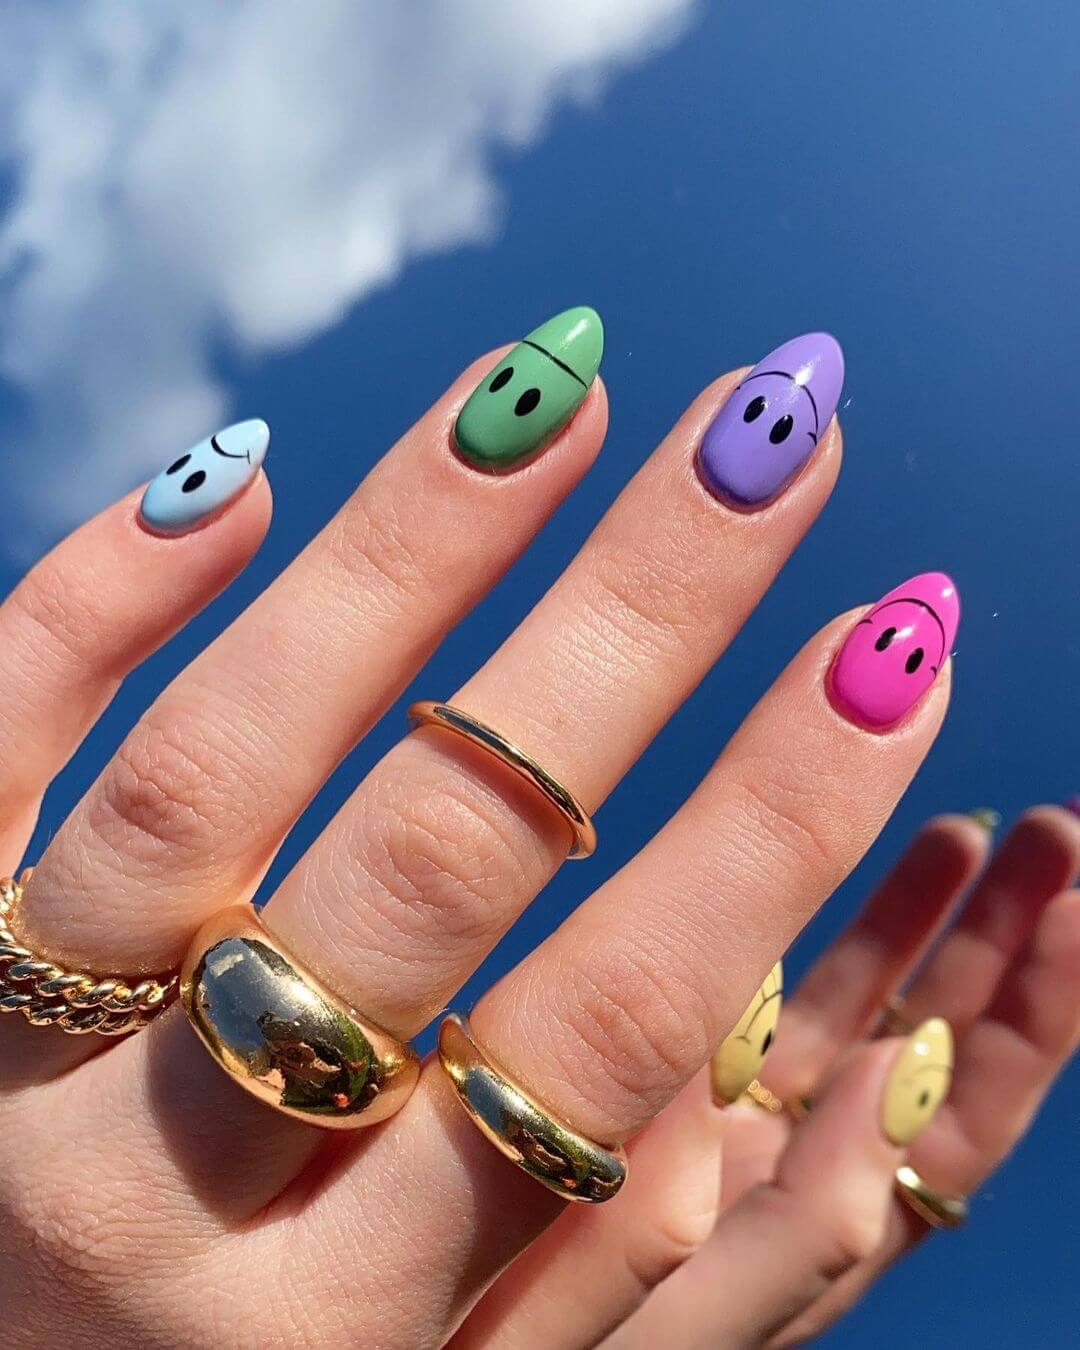 The 2021 Nail Trends You Need to Know